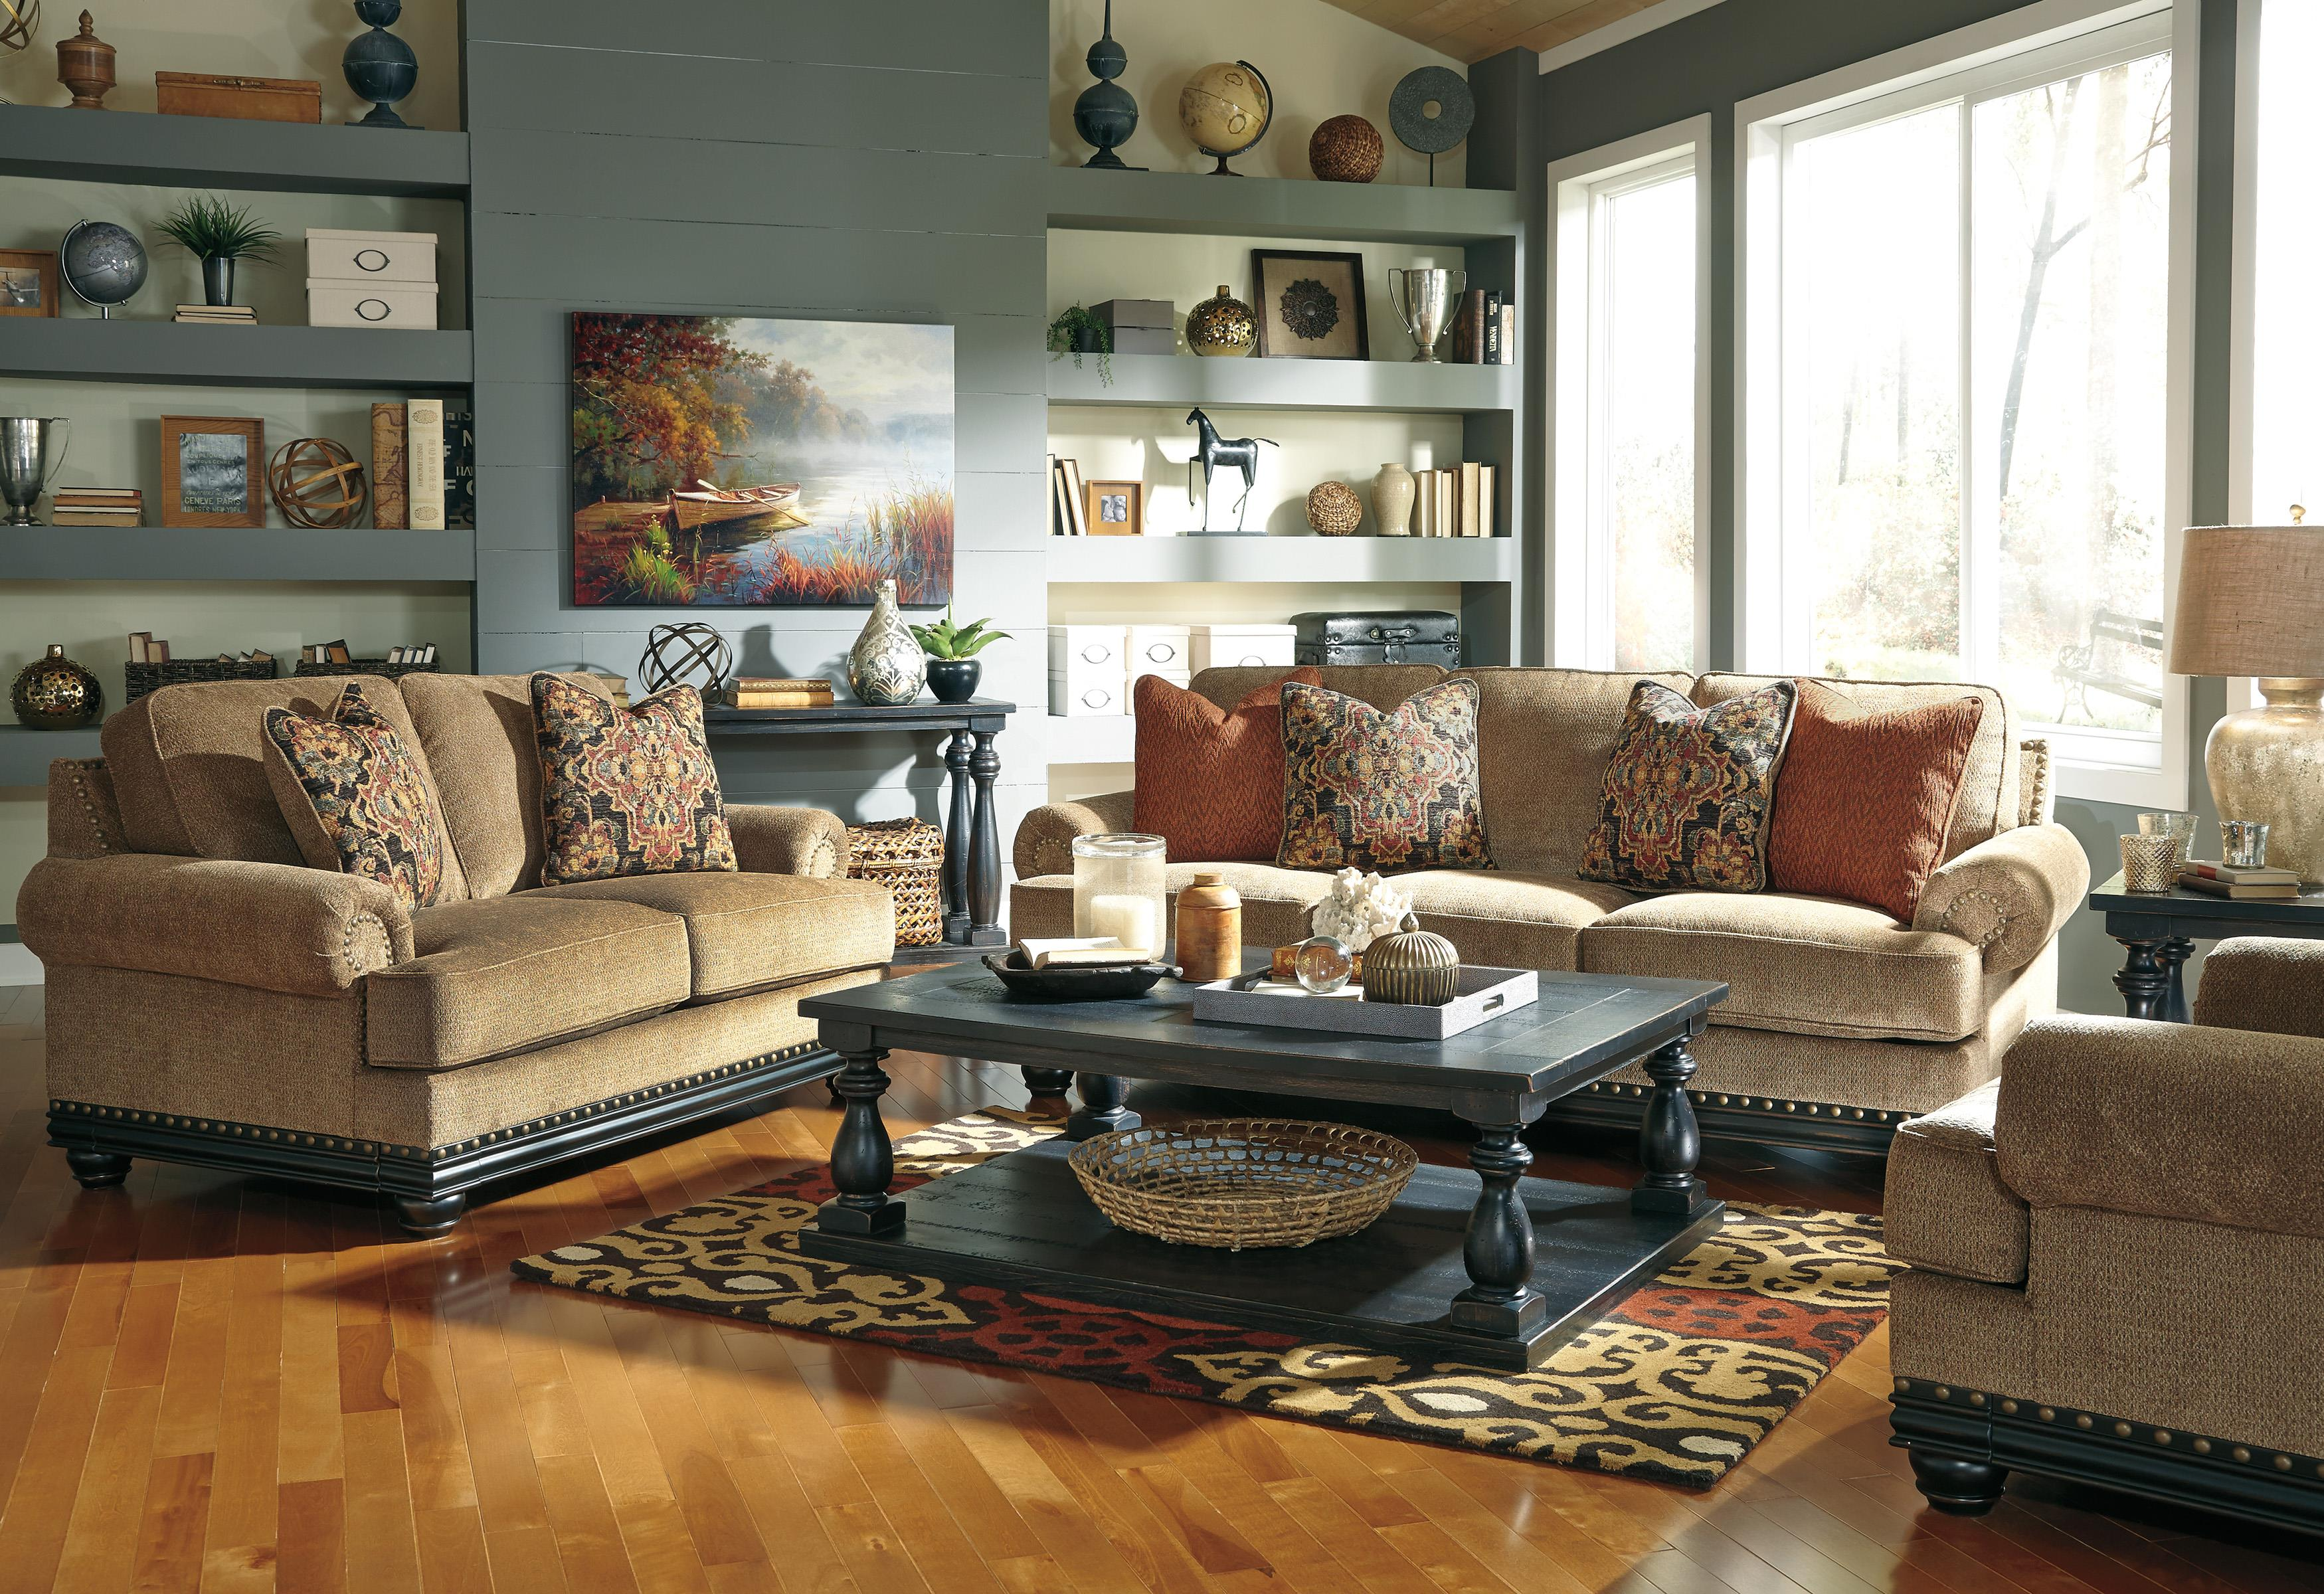 Signature Design by Ashley Elnora Stationary Living Room Group - Item Number: 93702 Living Room Group 2